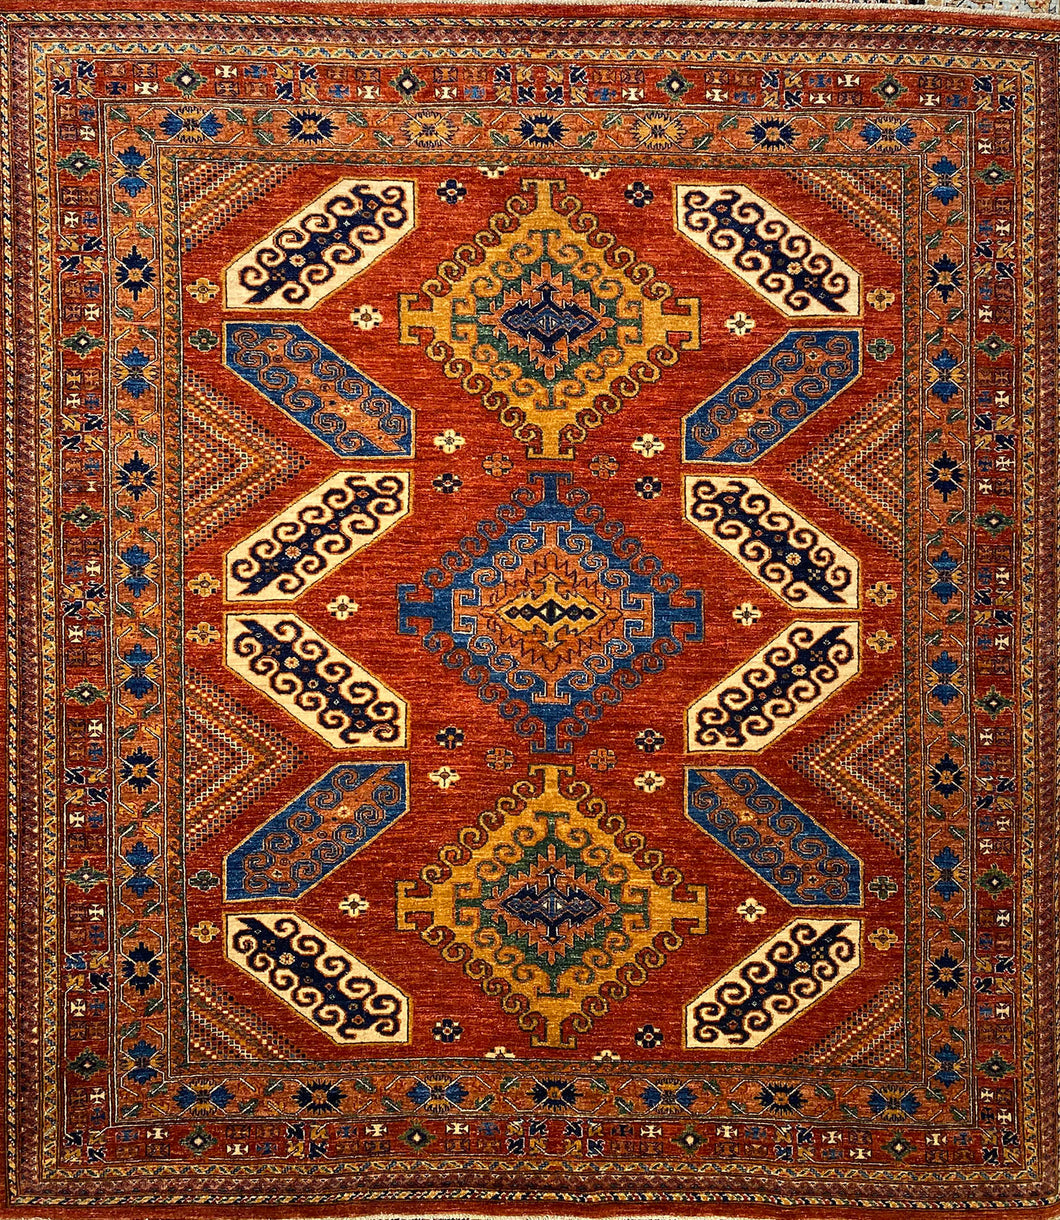 8 x 8.1 Ft Handmade Turkısh Wool Vıntage Carpet Turkish Rug